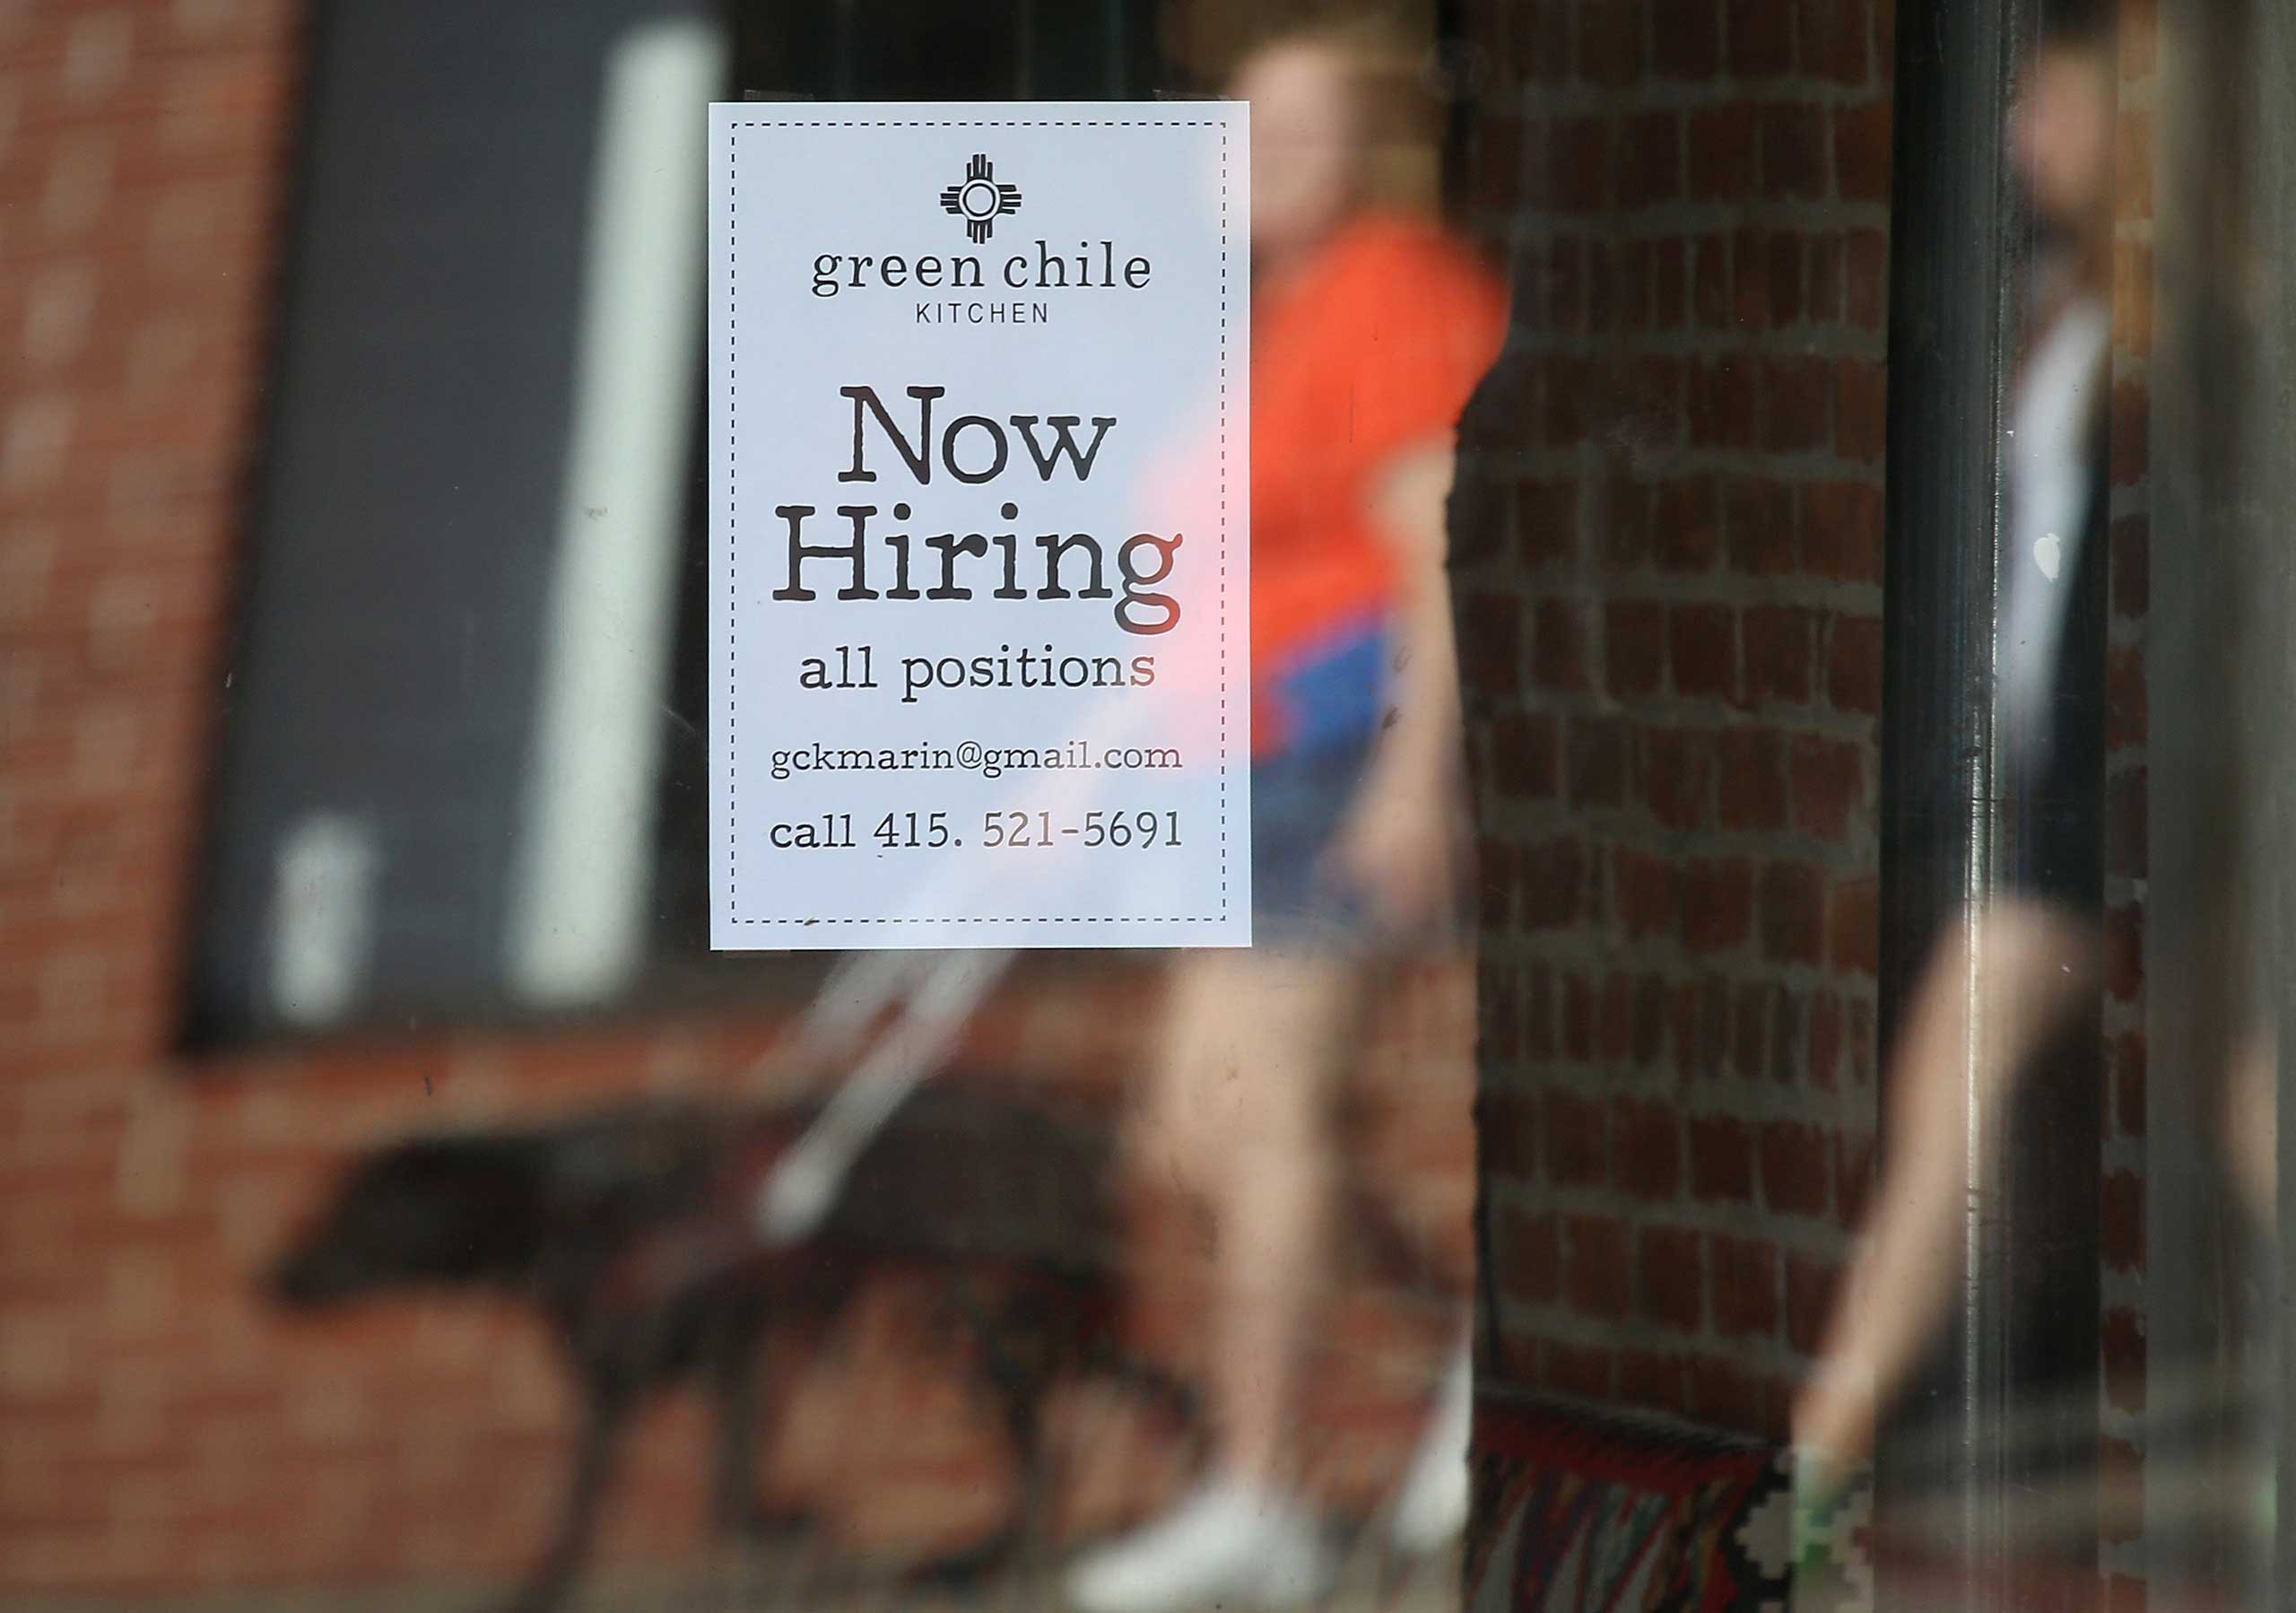 Pedestrians walk by a now hiring sign posted in the window of a business on Nov. 7, 2014 in San Rafael, Calif.